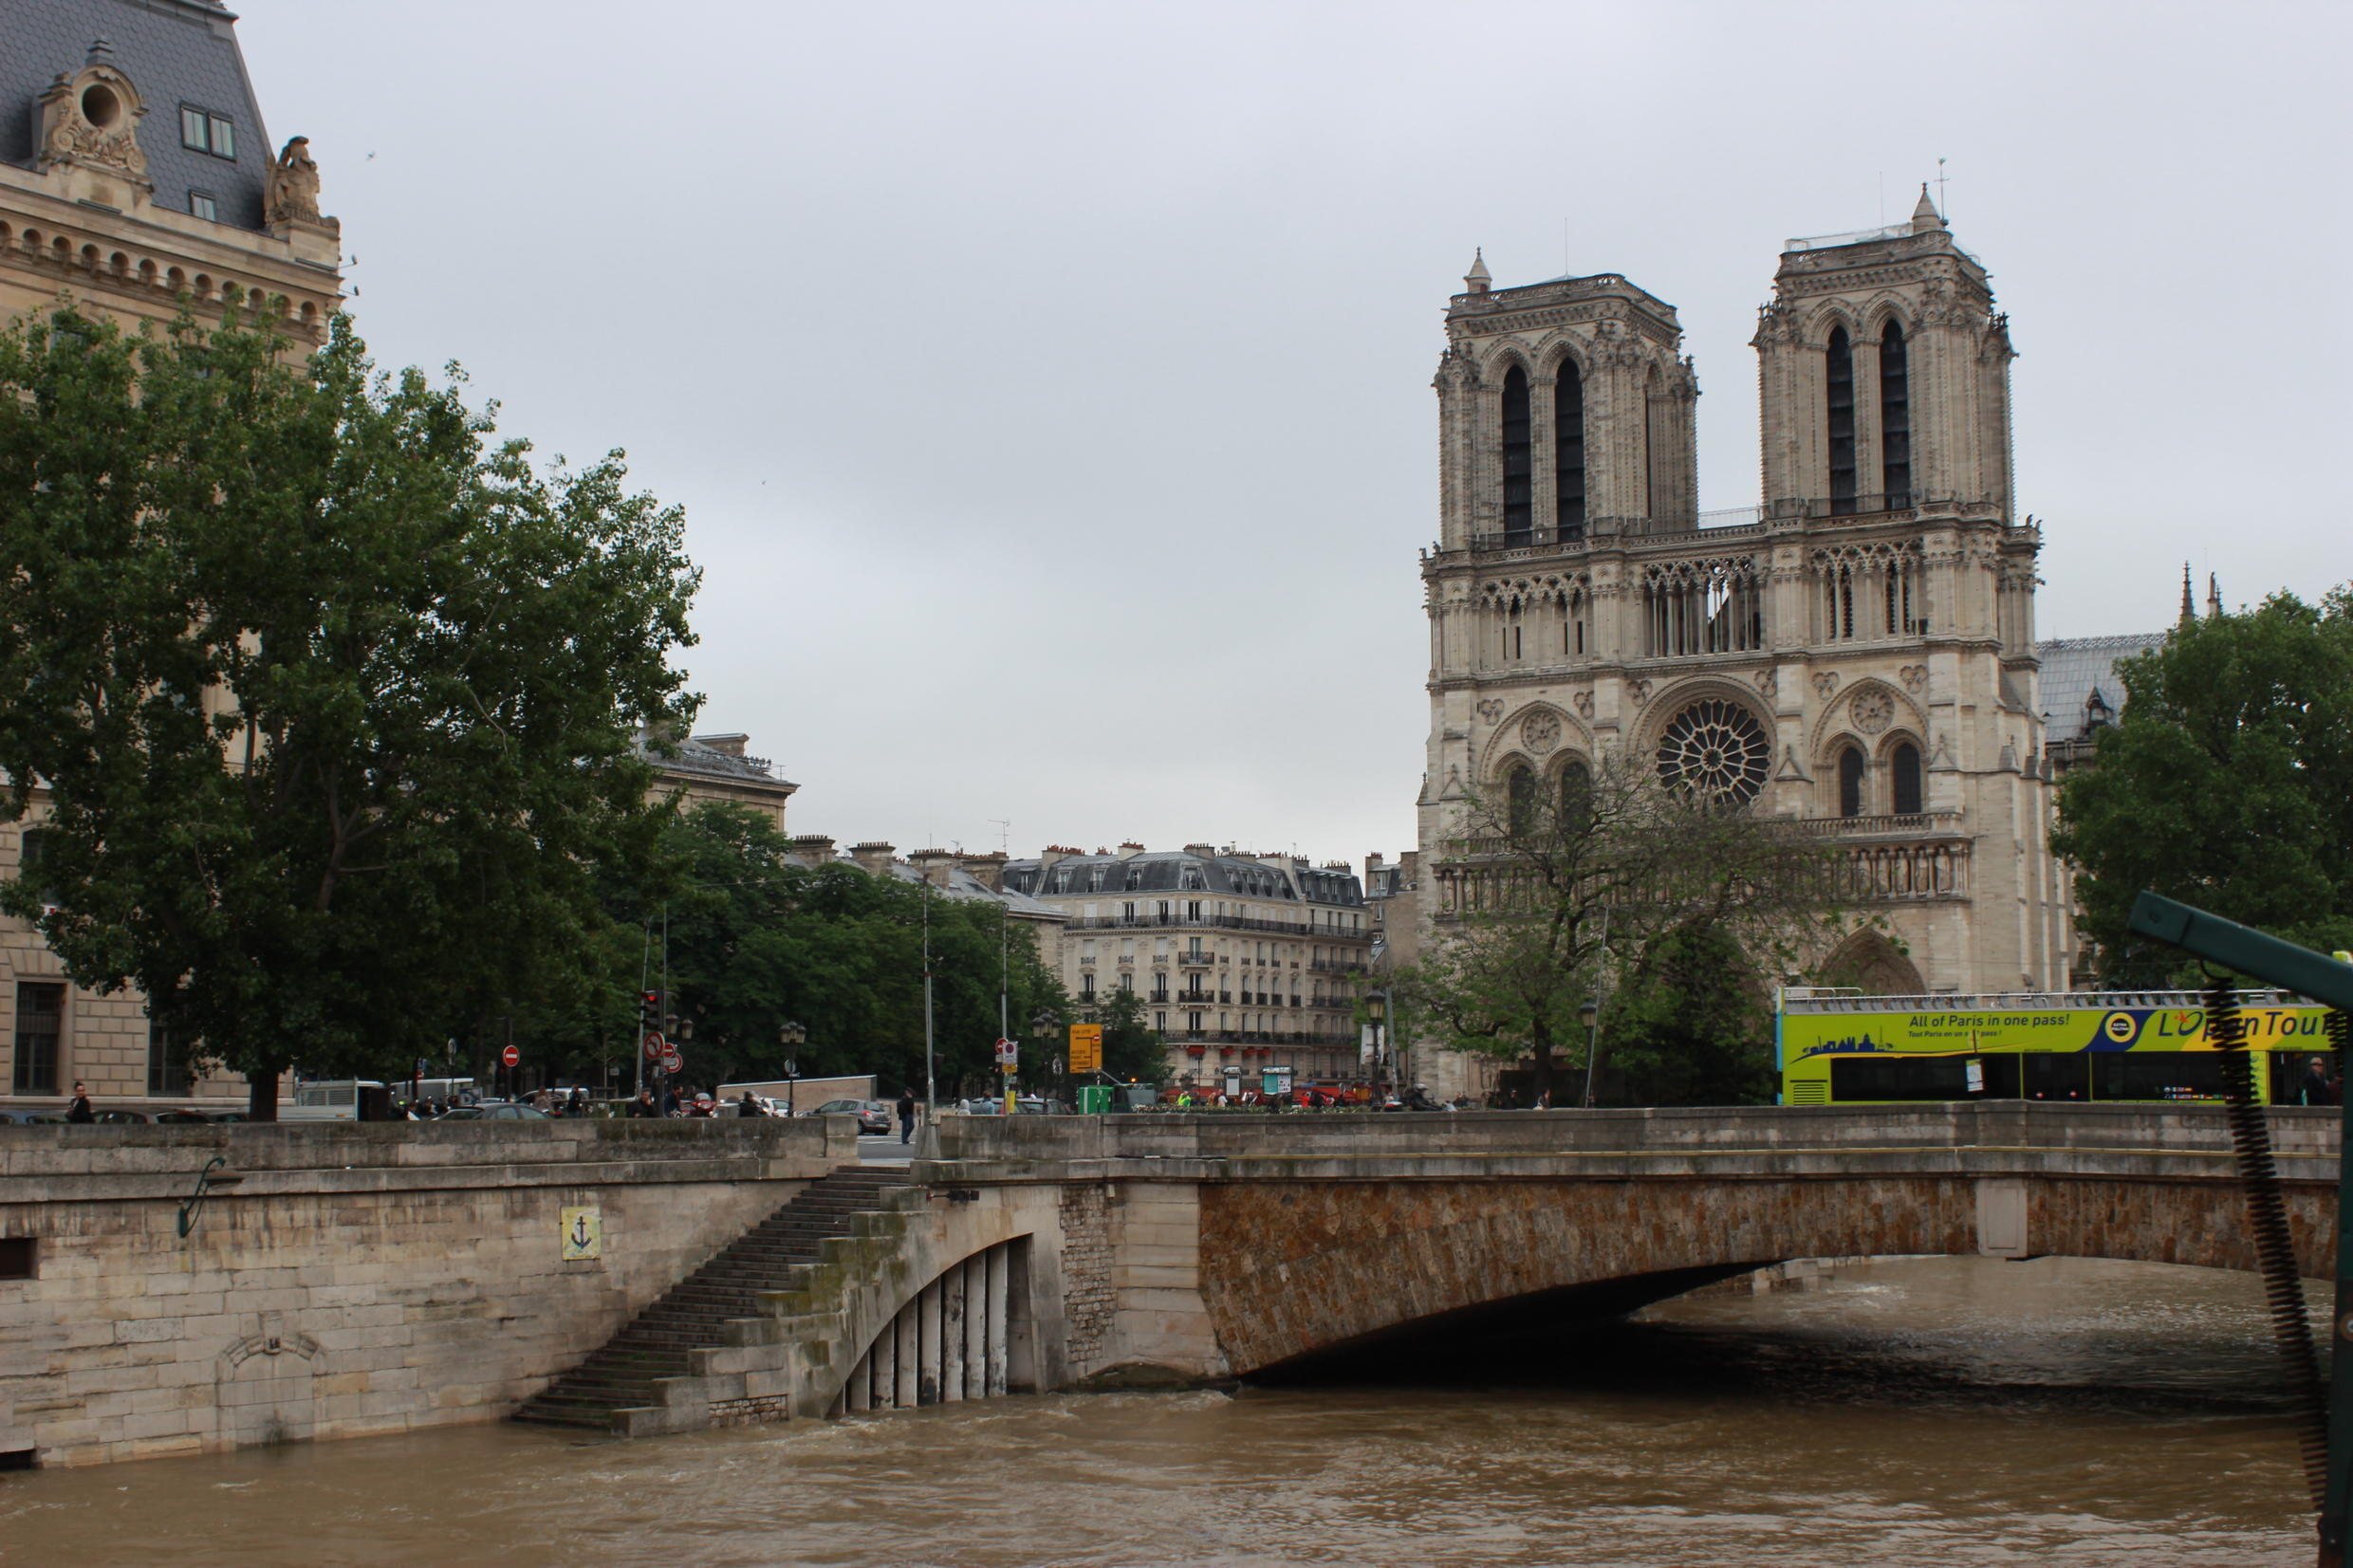 Some of France's most recognisable buildings are located in central Paris. Waves were lapping dangerously close to the Notre Dame Cathedral, also located on the Ile de la Cité.